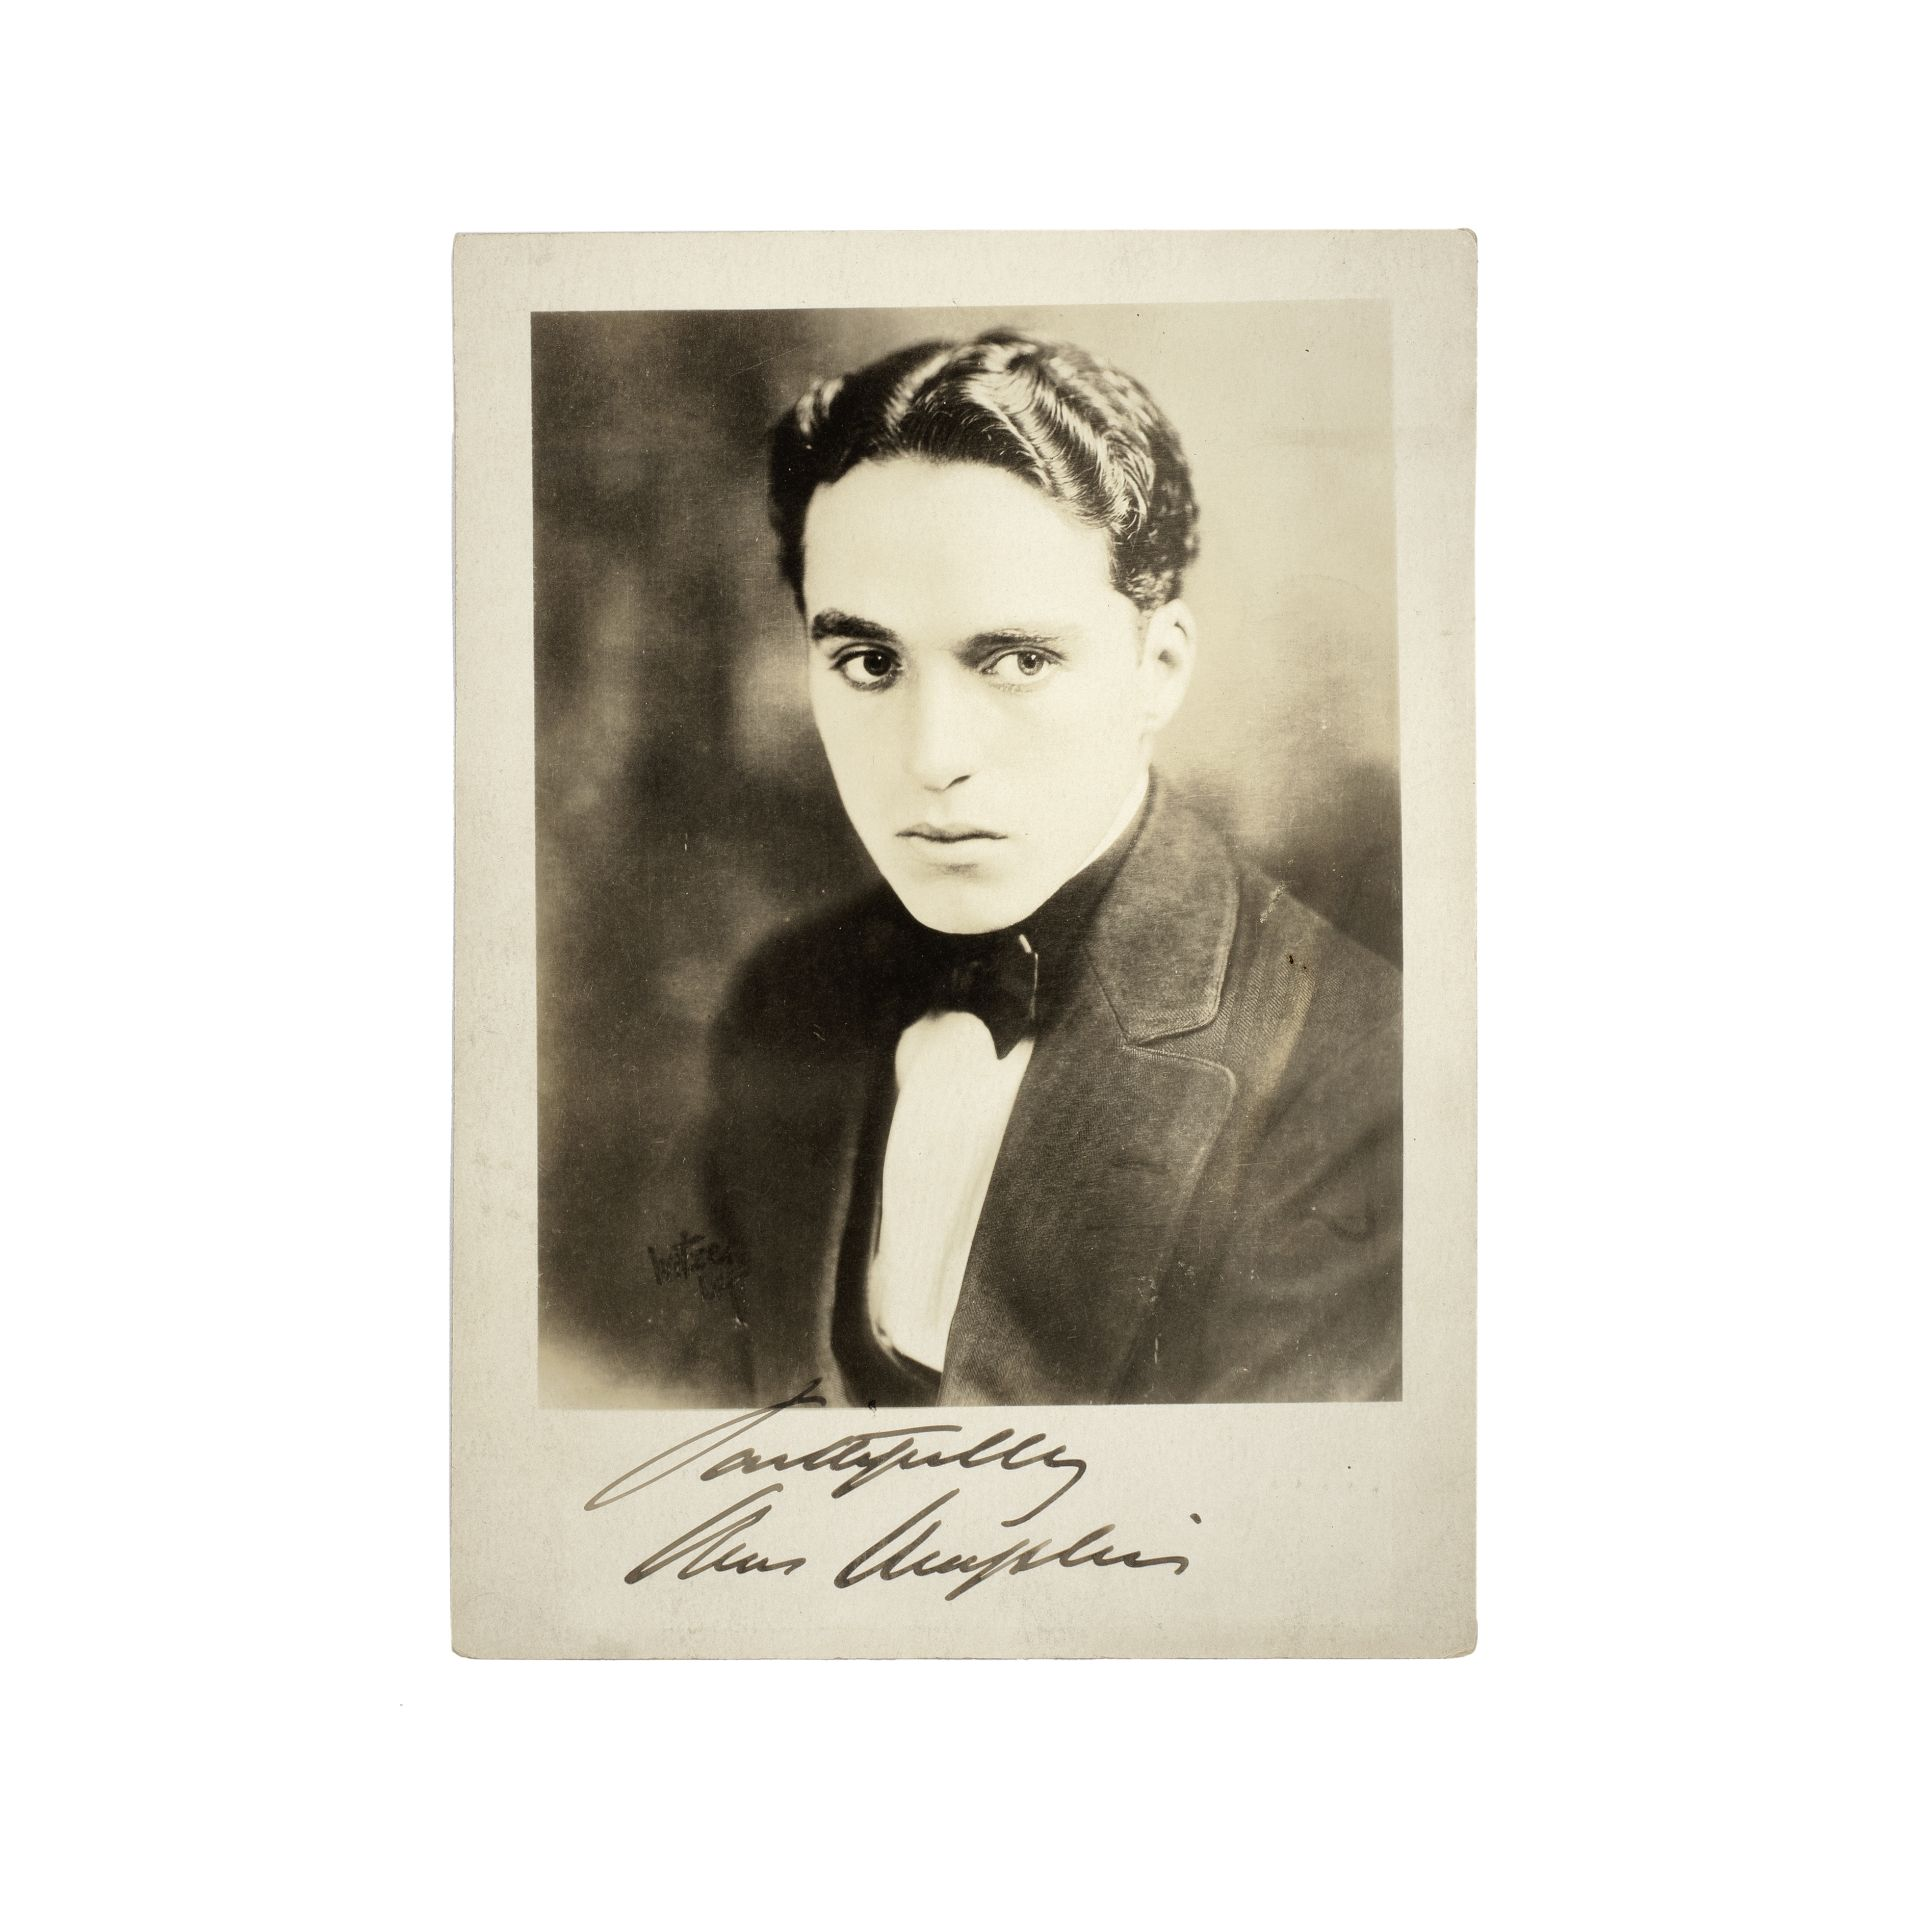 Charles Chaplin: An early signed publicity photograph, circa 1917,